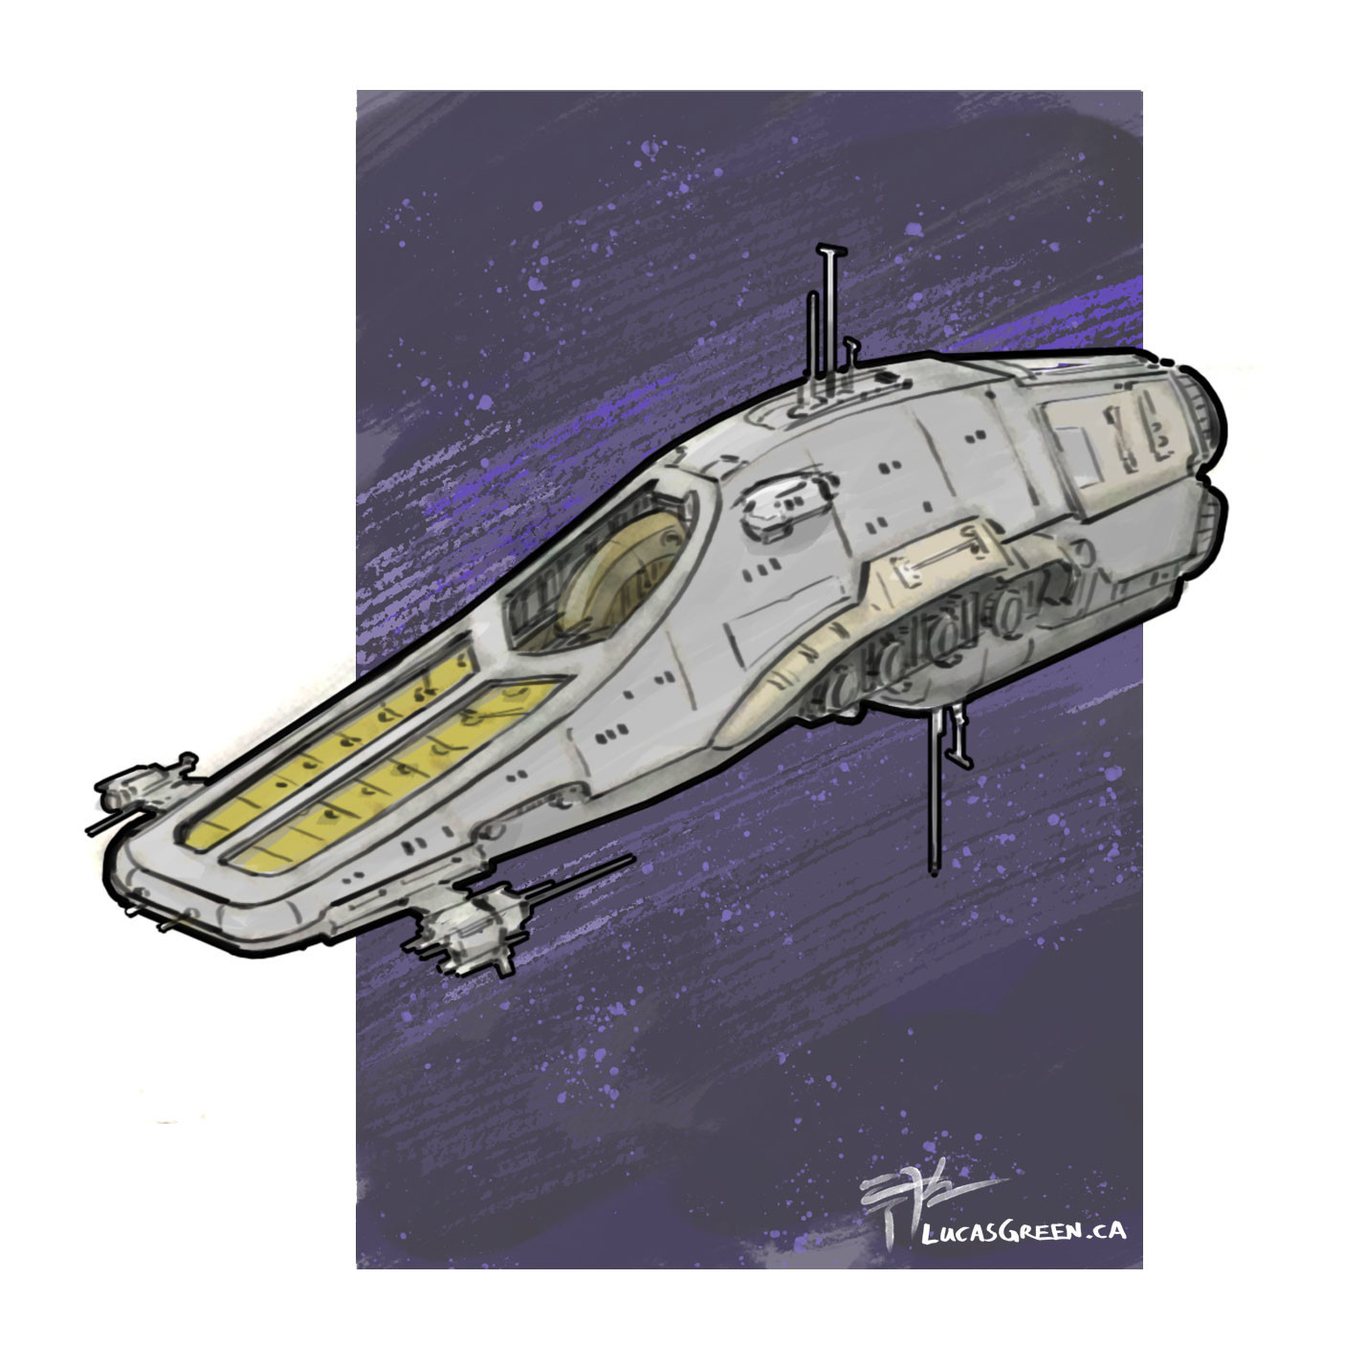 Lucasgreen spaceship sketch 1 7fe99d2f kpyz